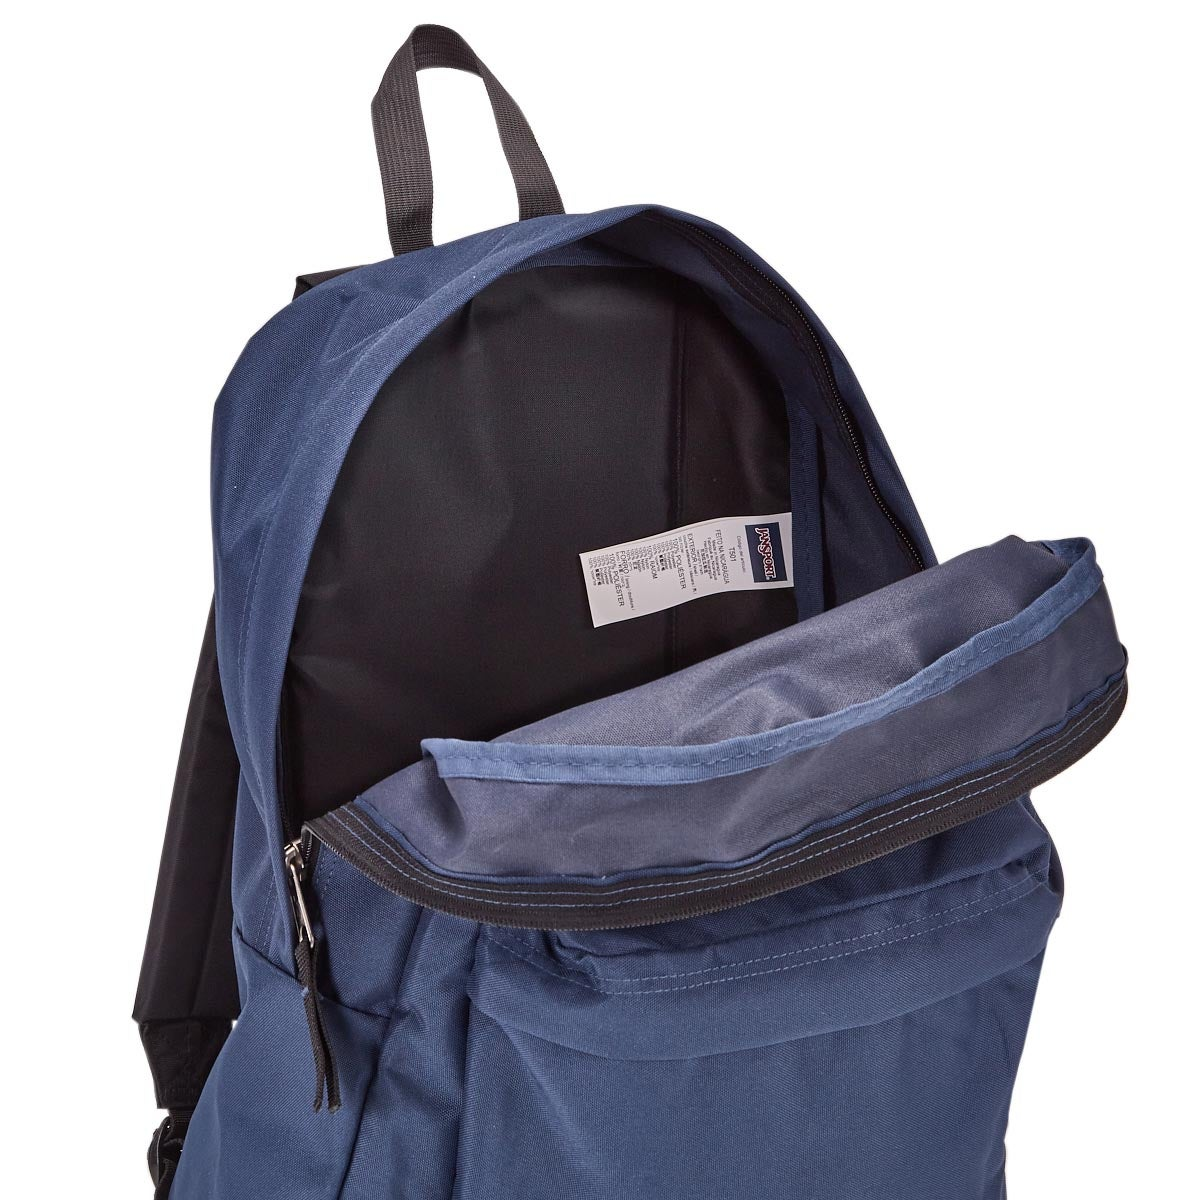 Jansport Superbreak navy backpack